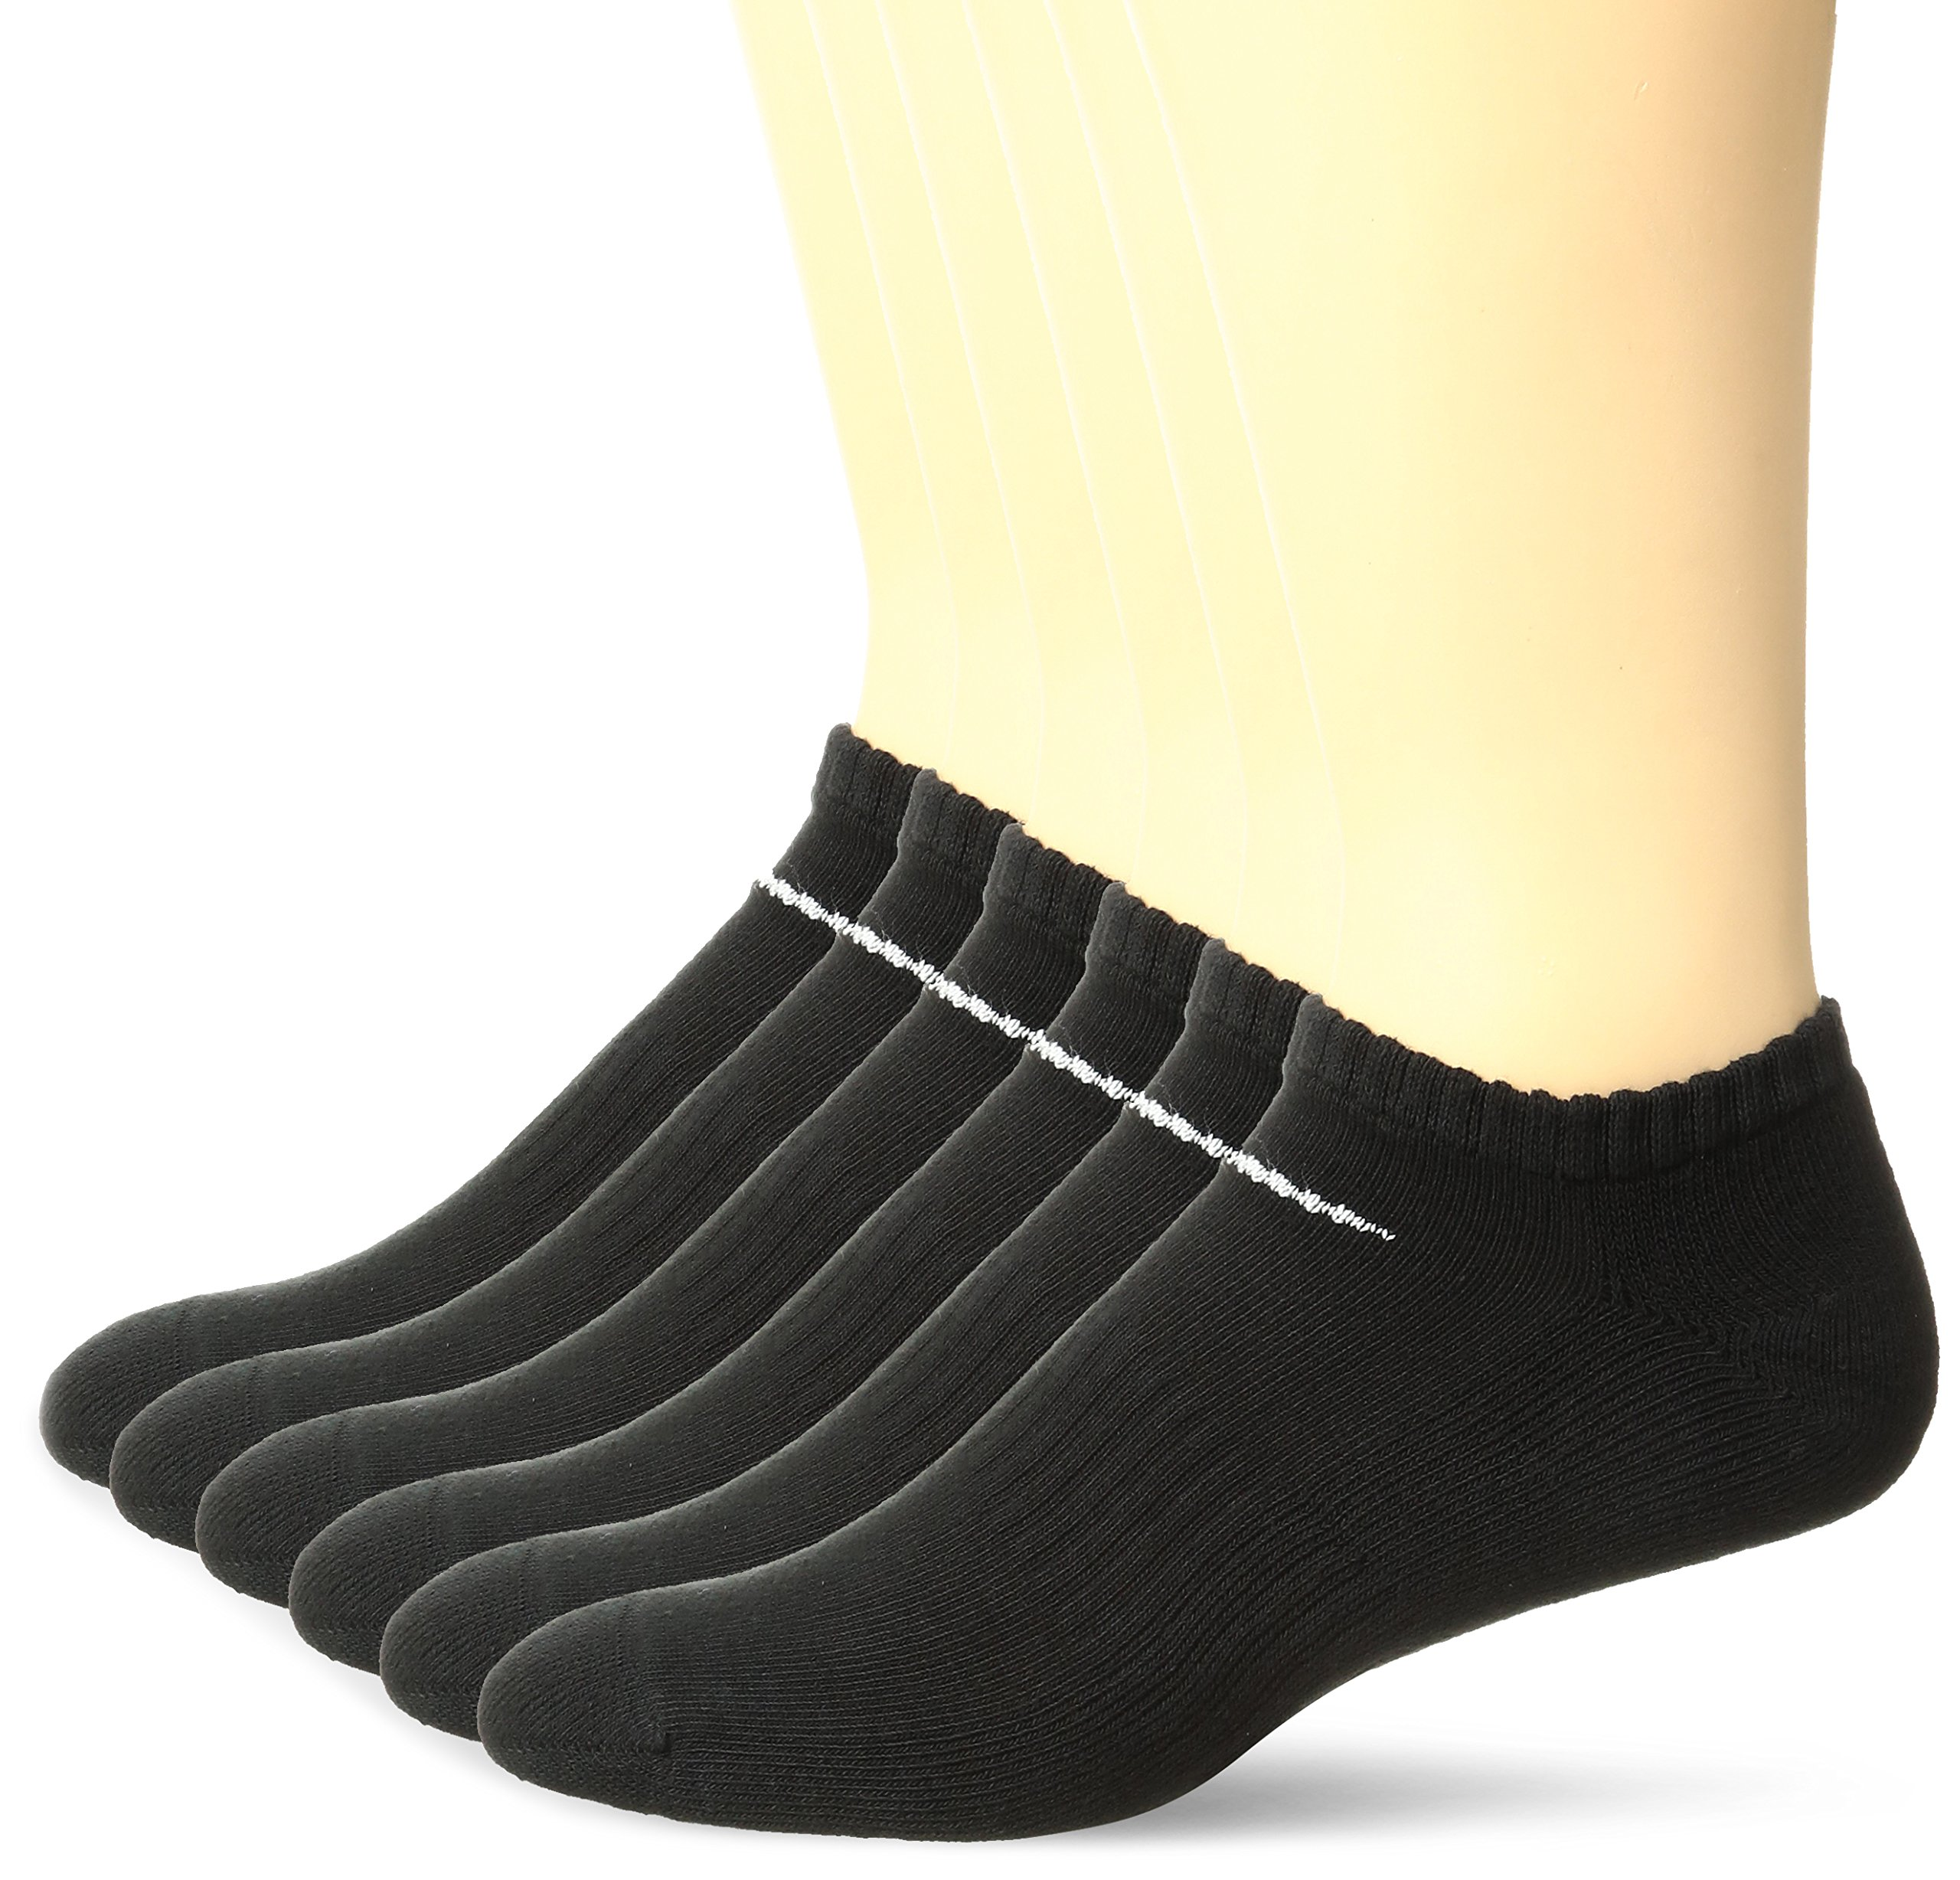 NIKE Unisex Performance Cushion No-Show Socks with Bag (6 Pairs), Black/White, Large